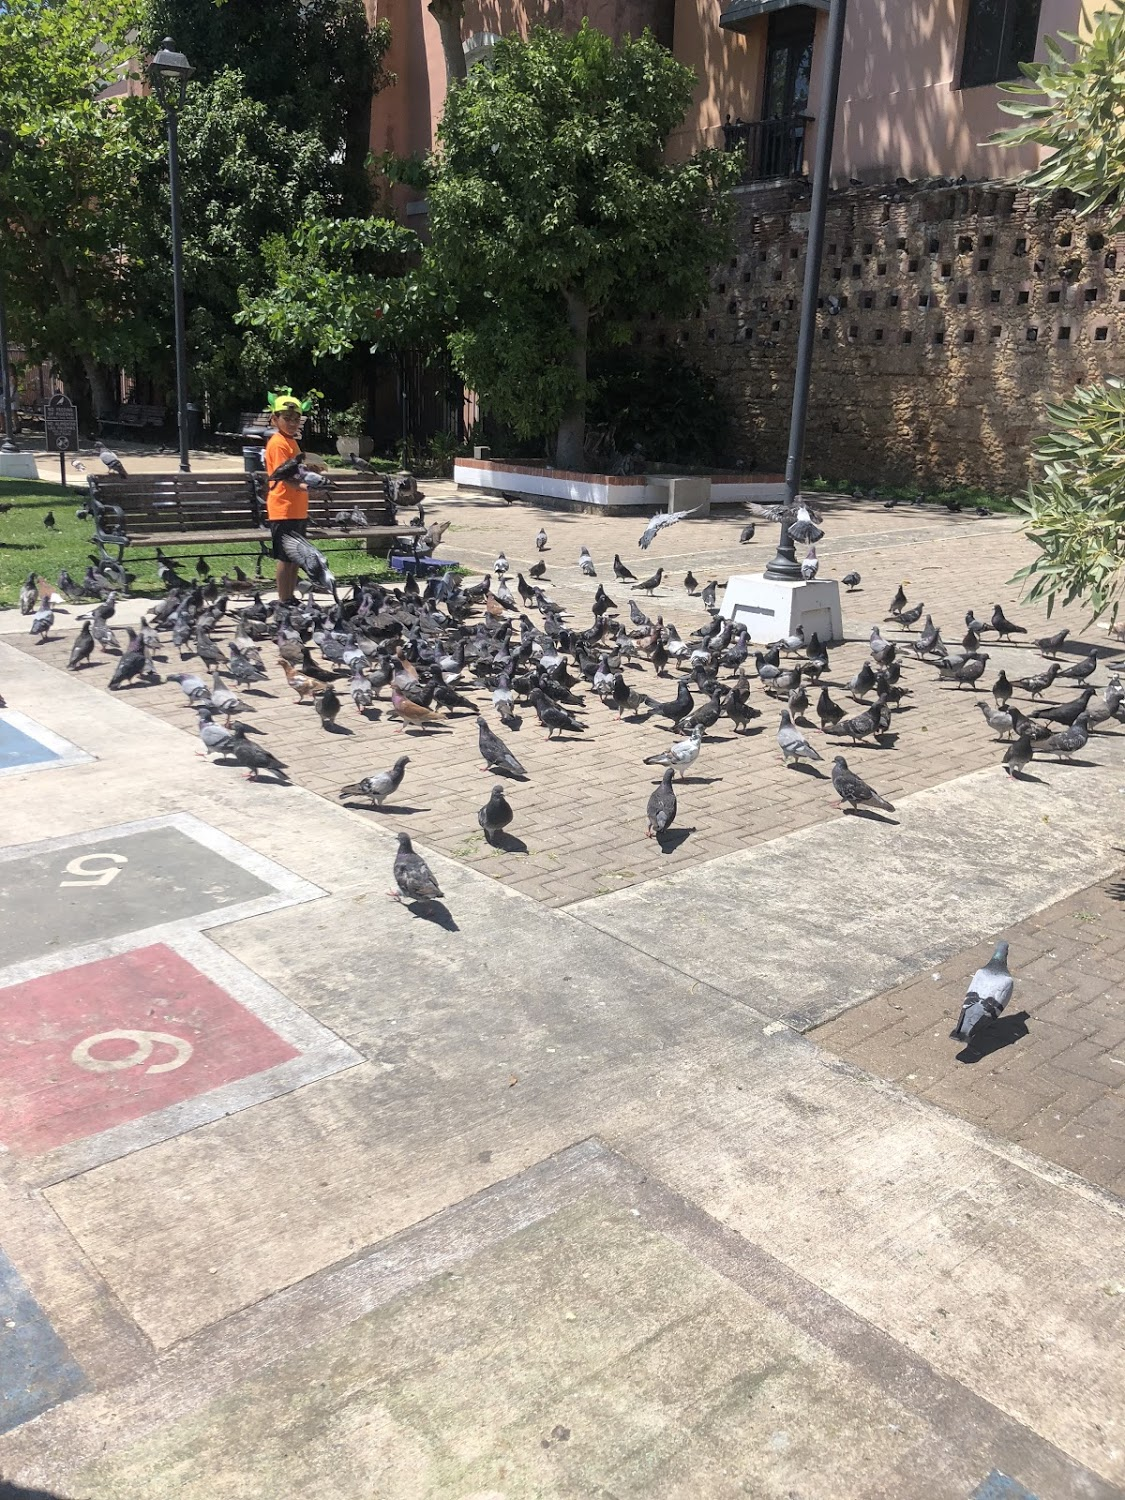 This is the pigeon park in Old San Juan. The pigeons here are so used to humans that they don't even fly away unless you get very close them them! One even landed on Becca Lamb's shoulder!